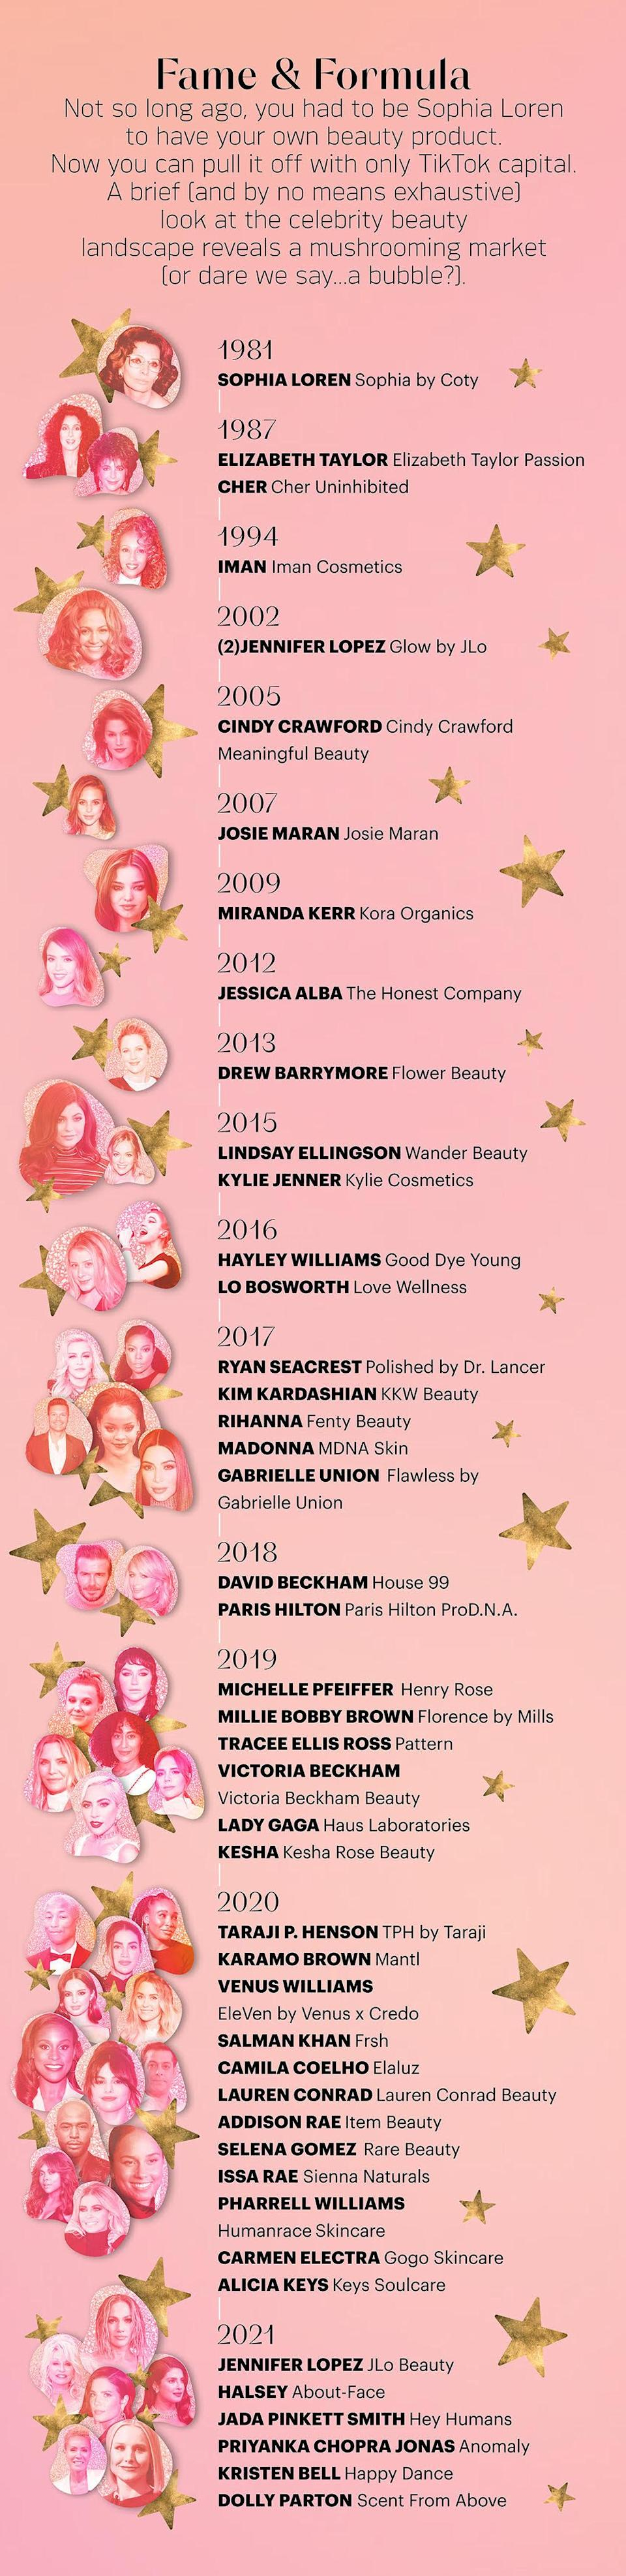 """<h1 class=""""title"""">Timeline of Celebrity Beauty Brand Launches</h1>"""